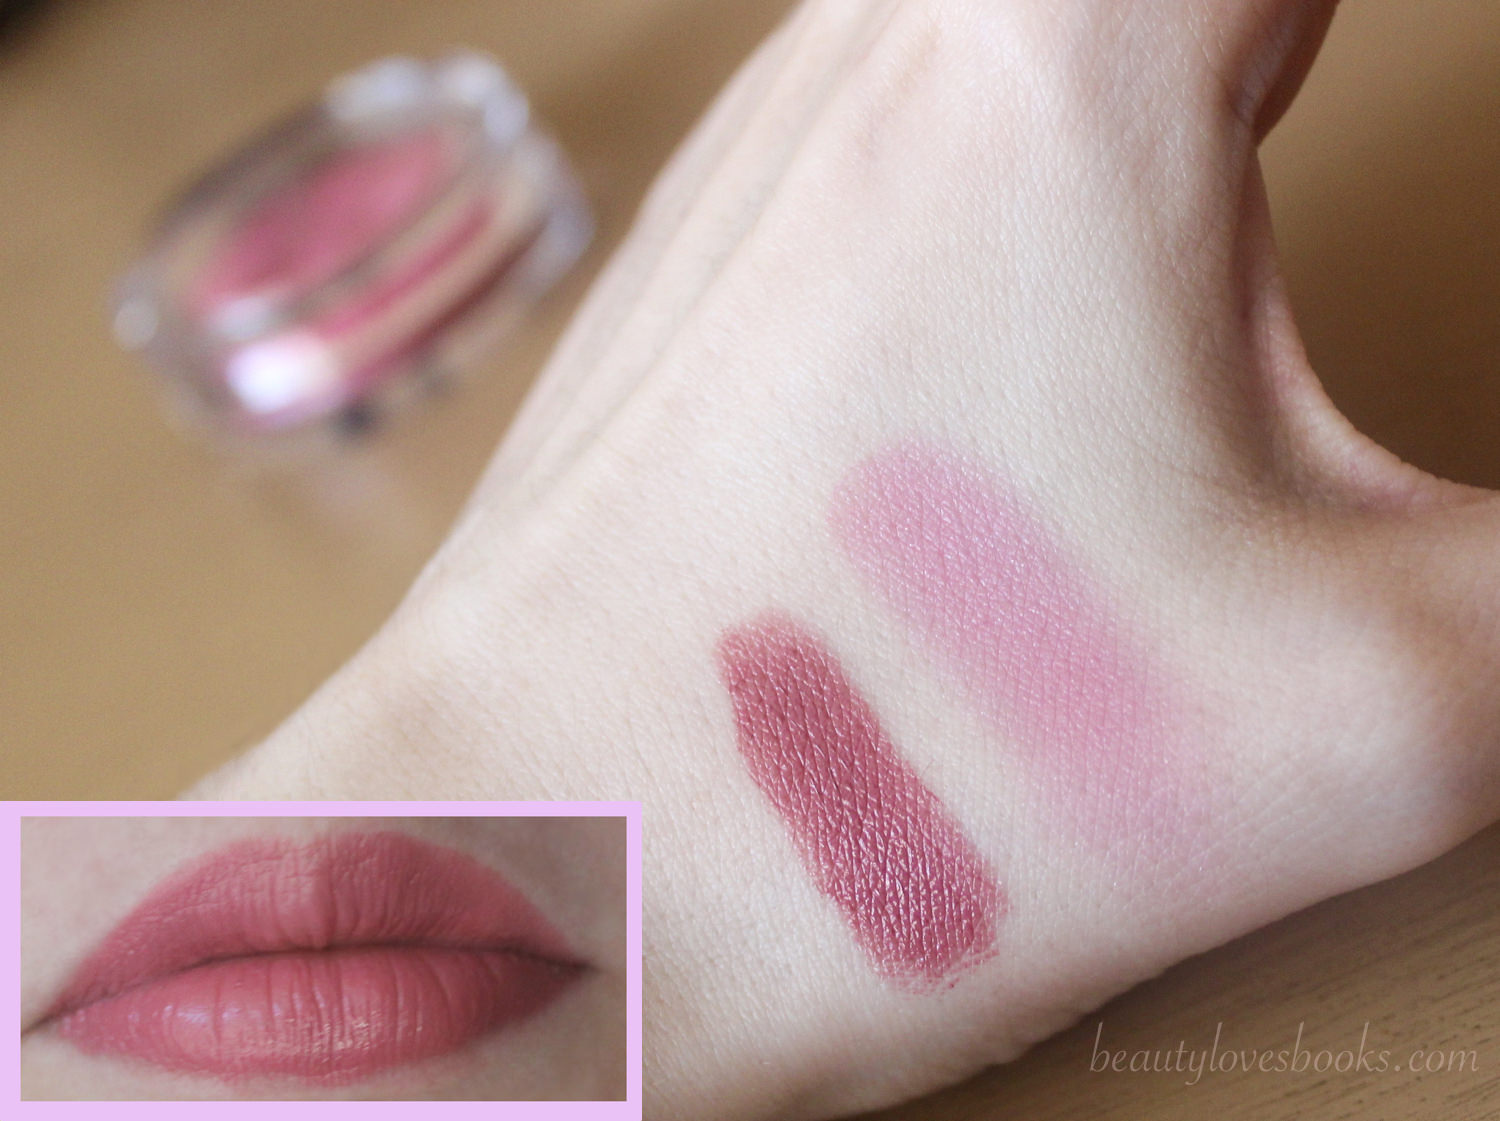 Clinique Cheek Pop blush and Clinique Pop lip colour + primer lipstick in the shade Plum Pop - swatches